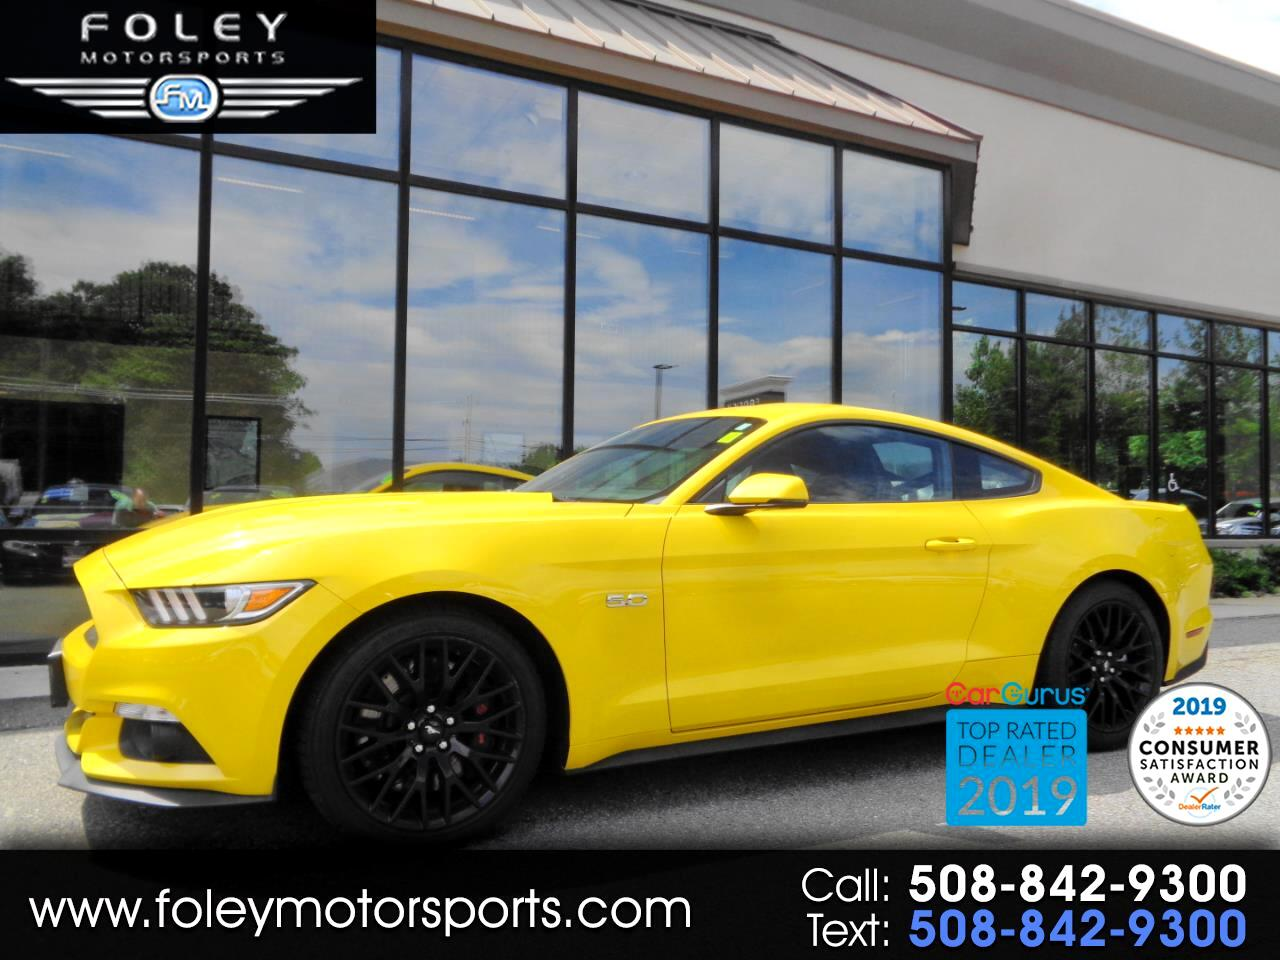 Ford Mustang 2dr Cpe GT Premium 2016